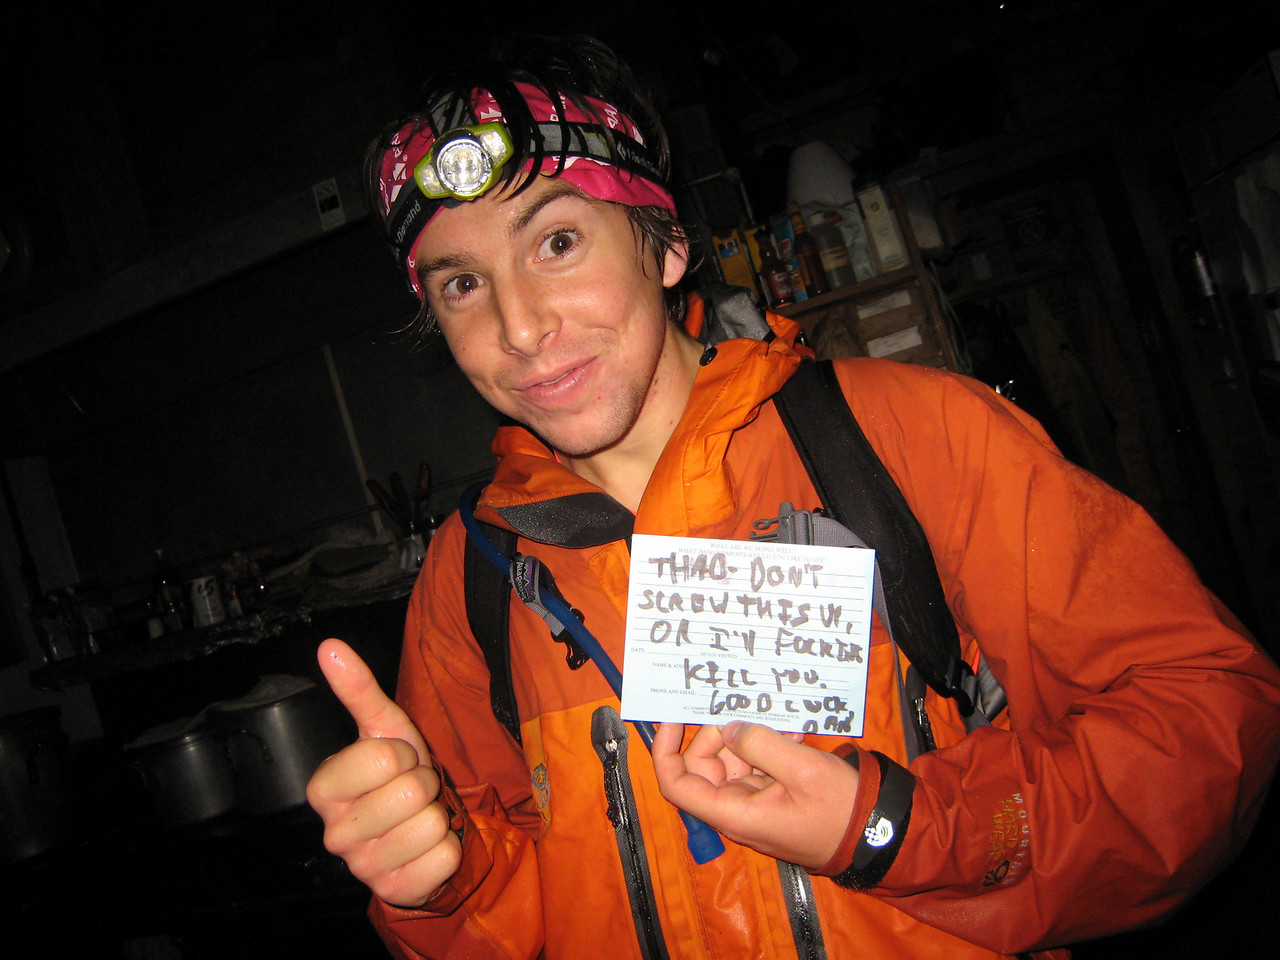 But it was all worth it when we got a friendly note at our first hut!